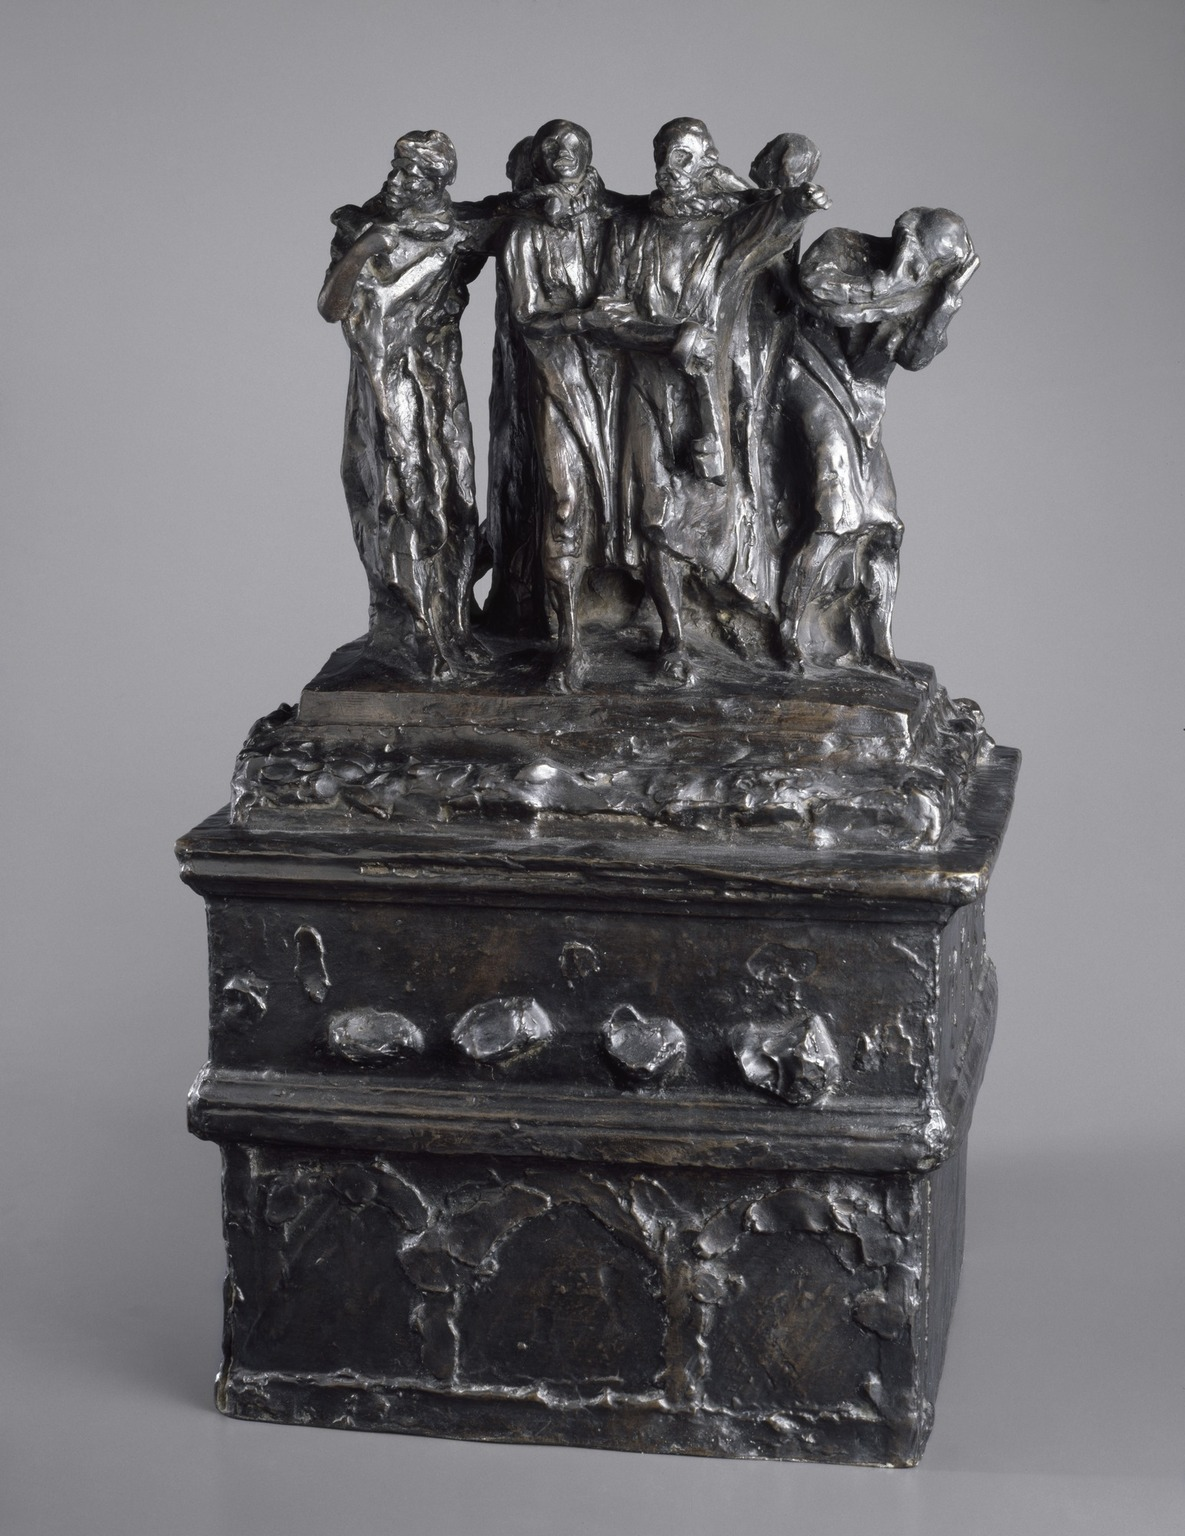 Brooklyn Museum: Monument to the Burghers of Calais, First Maquette (Monument des Bourgeois de Calais, première maquette)